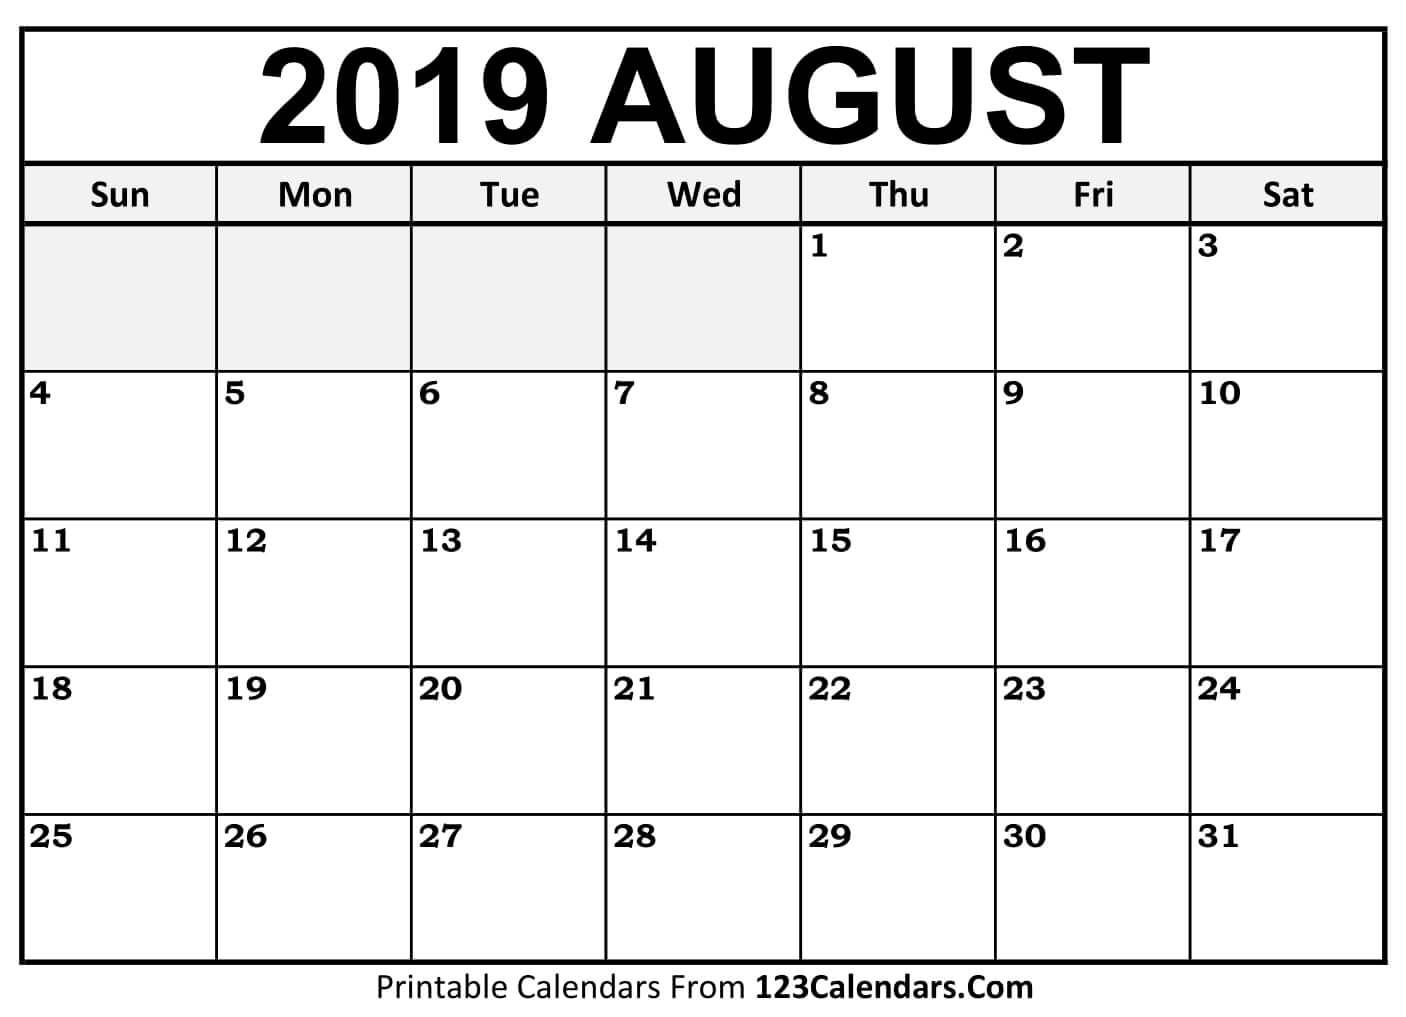 August 2019 Calendar Printable Templates | August 2019 Calendar pertaining to Printable Template Monthly Schedule August